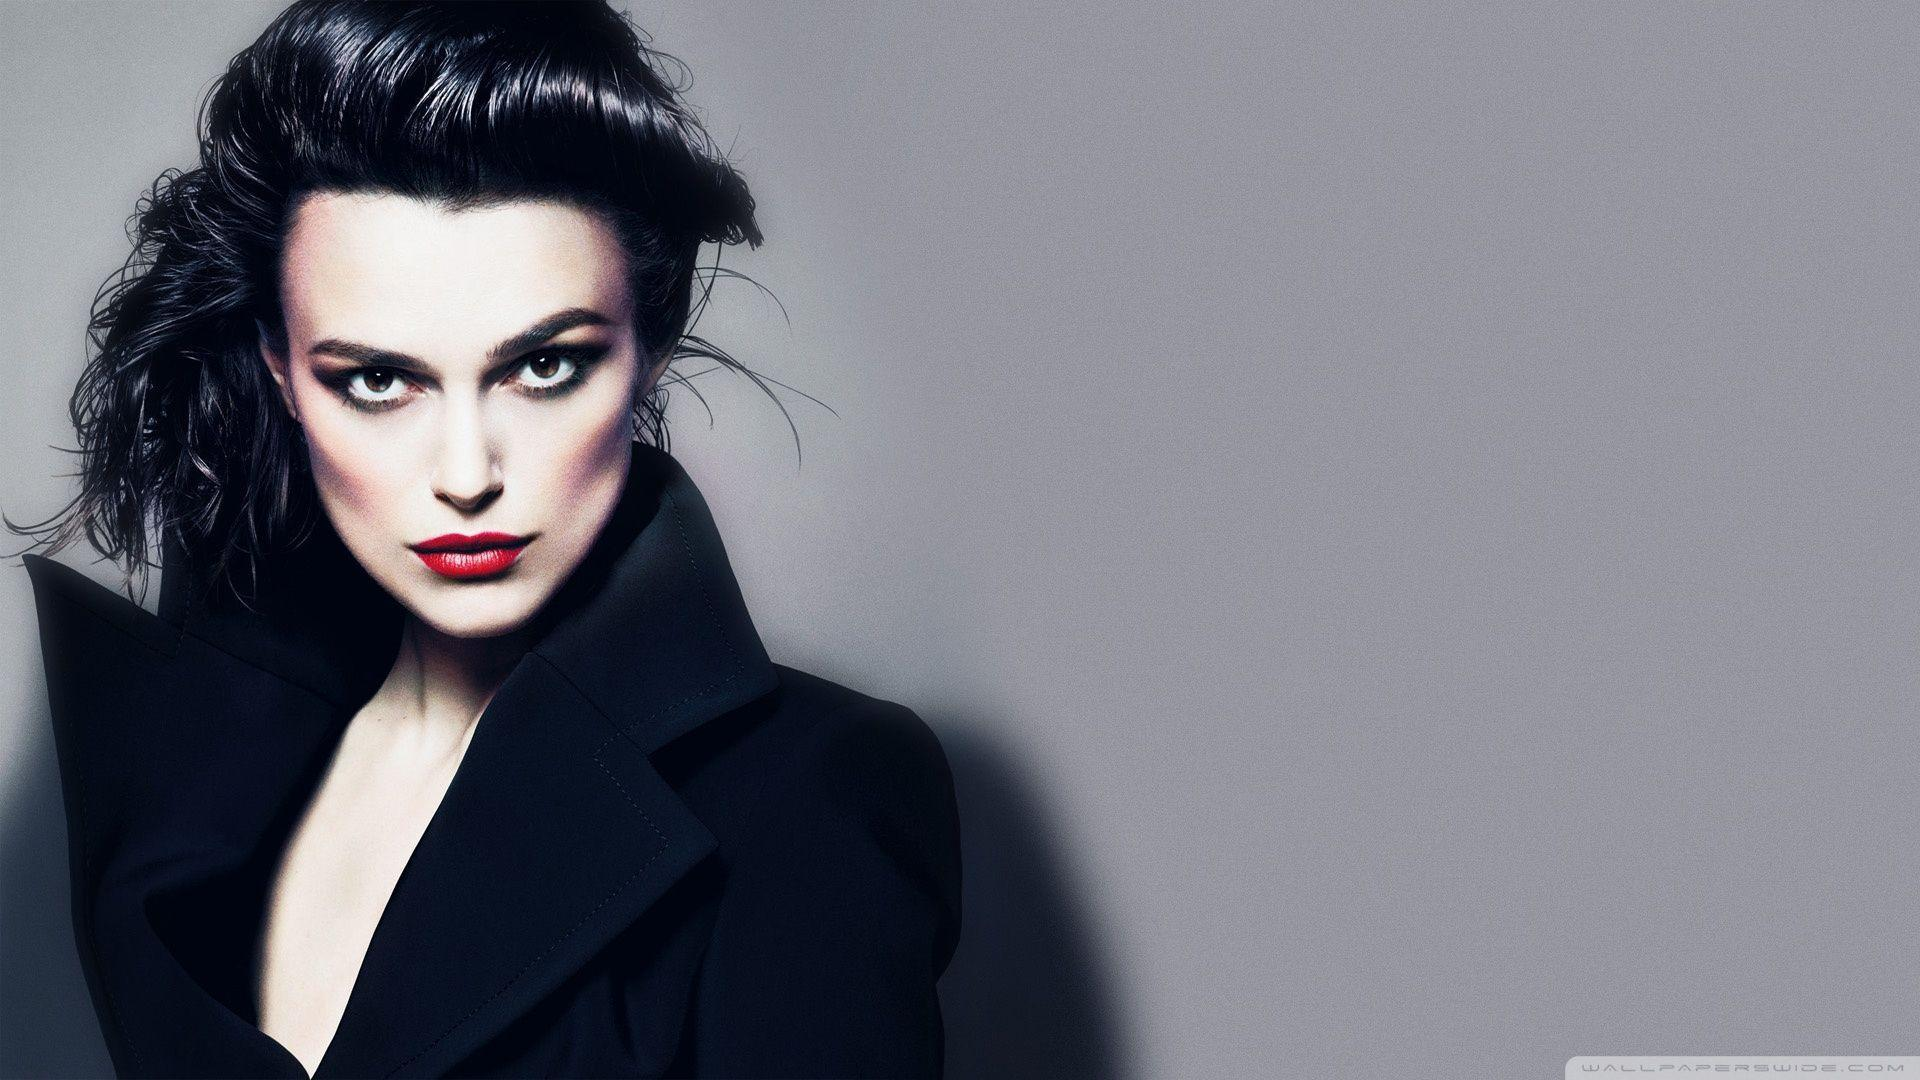 Keira Knightley Wallpapers HD Backgrounds Images Pics Photos Free